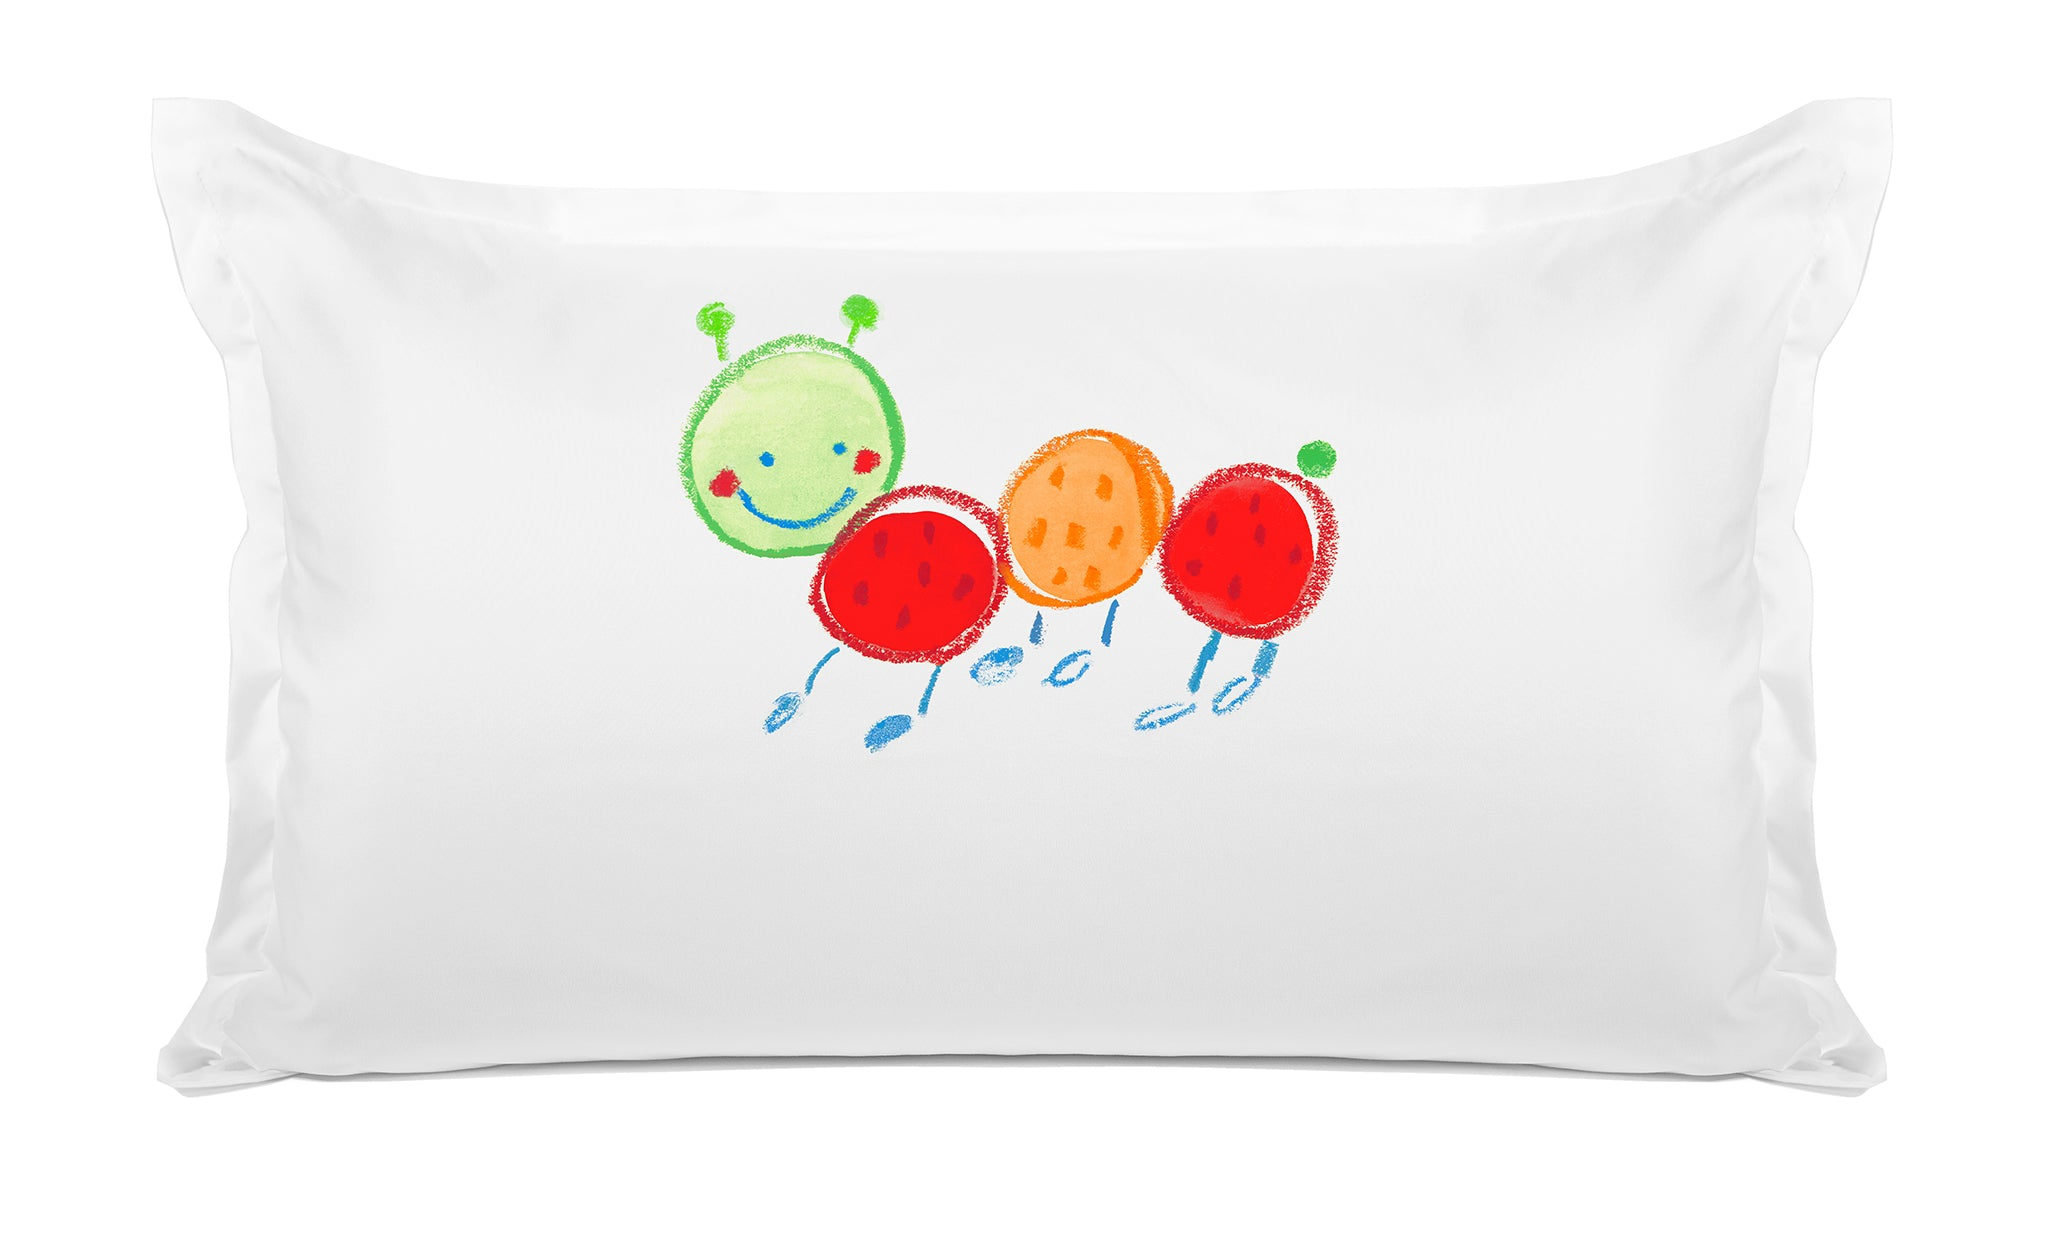 Caterpillar - Personalized Kids Pillowcase Collection